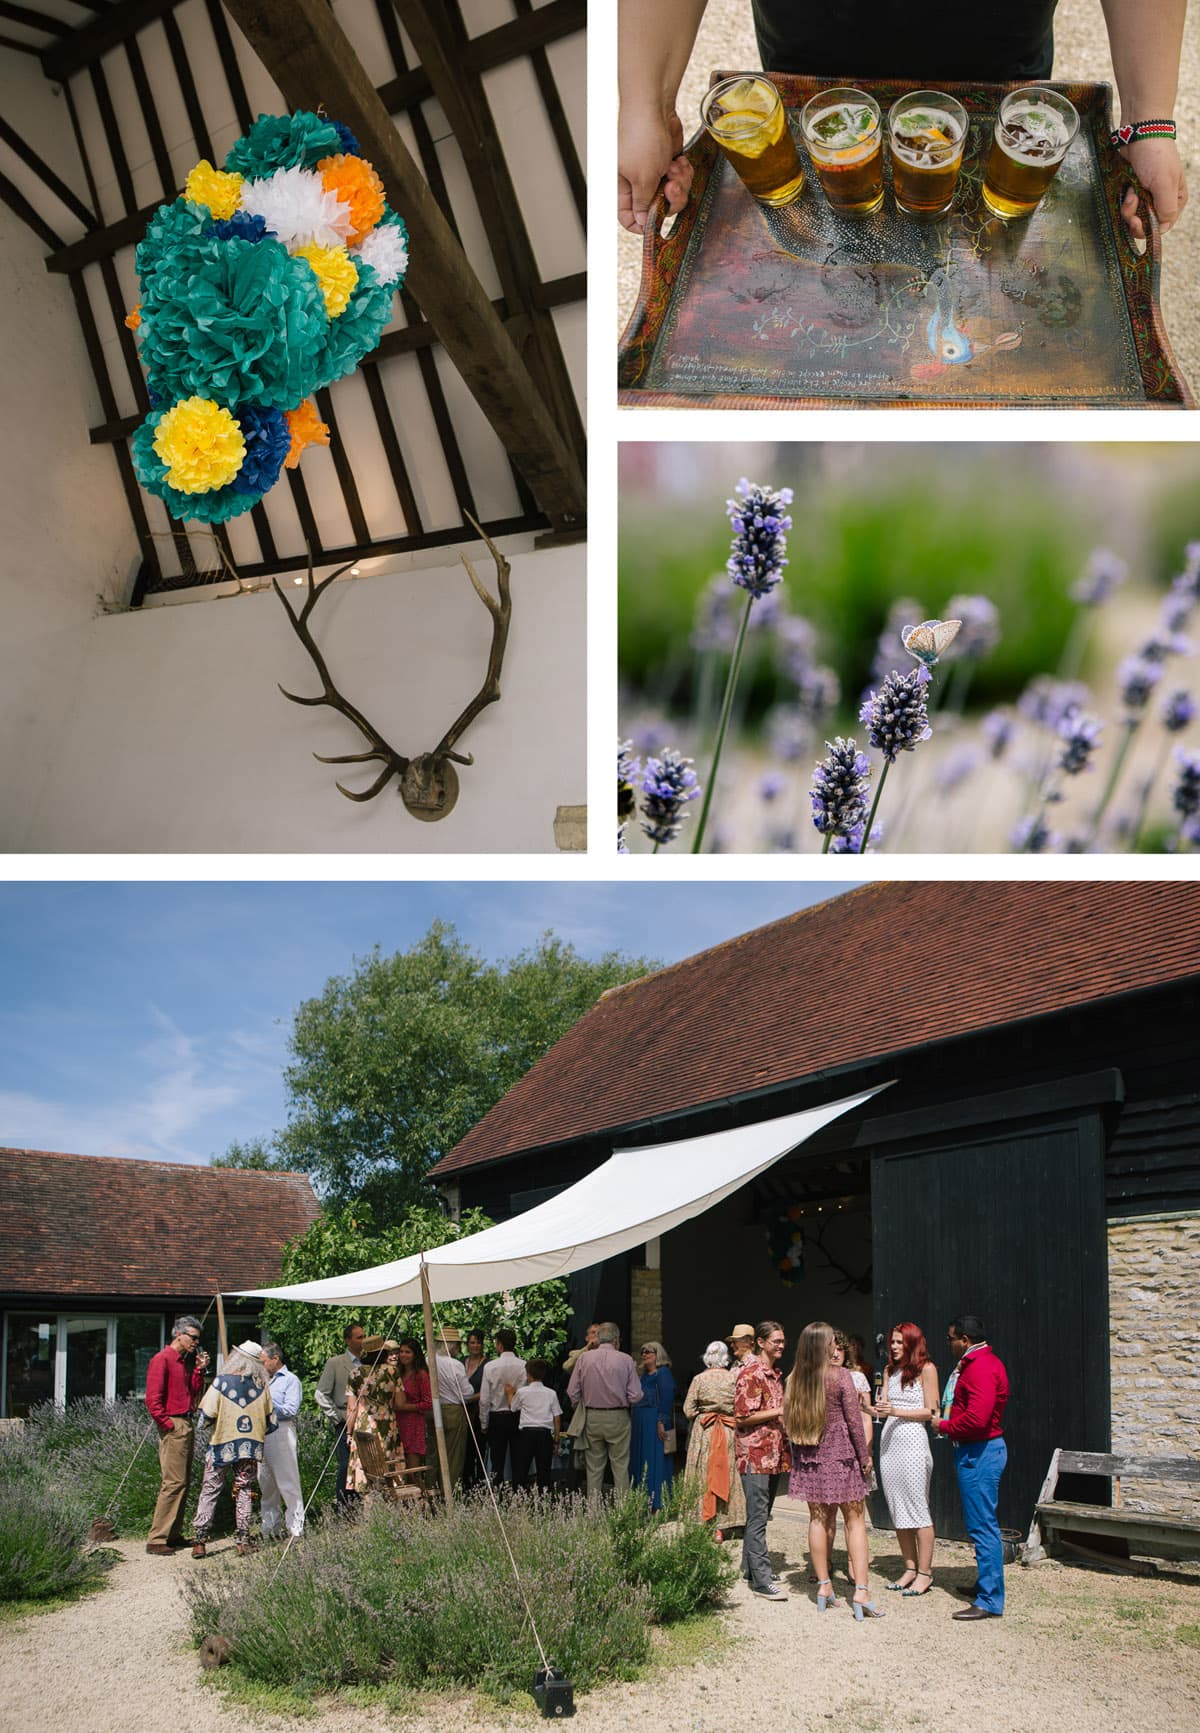 Collage of images from safari-themed wedding. From top left: Colourful pompoms and antlers in the barn; Pimms served on arrival; lavender with a butterfly on it; guests mingle under the awning at the barn